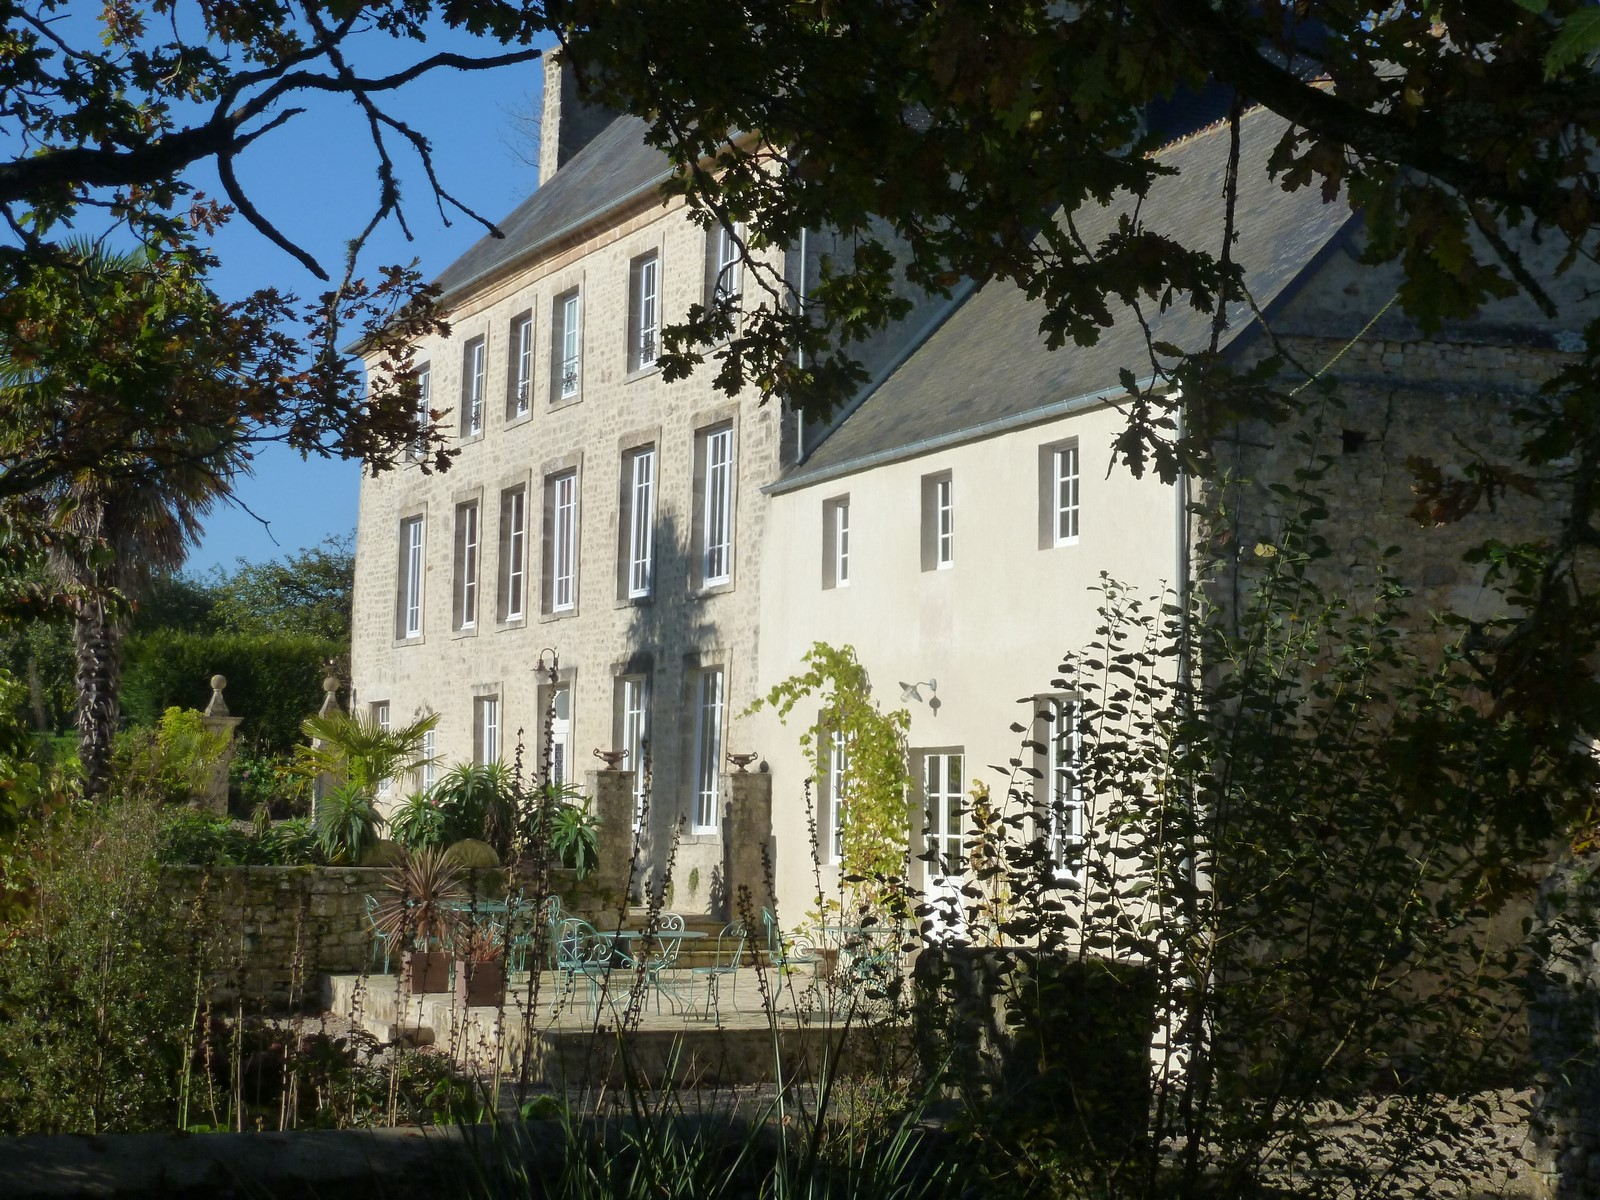 Front facing of Manoir de savigny